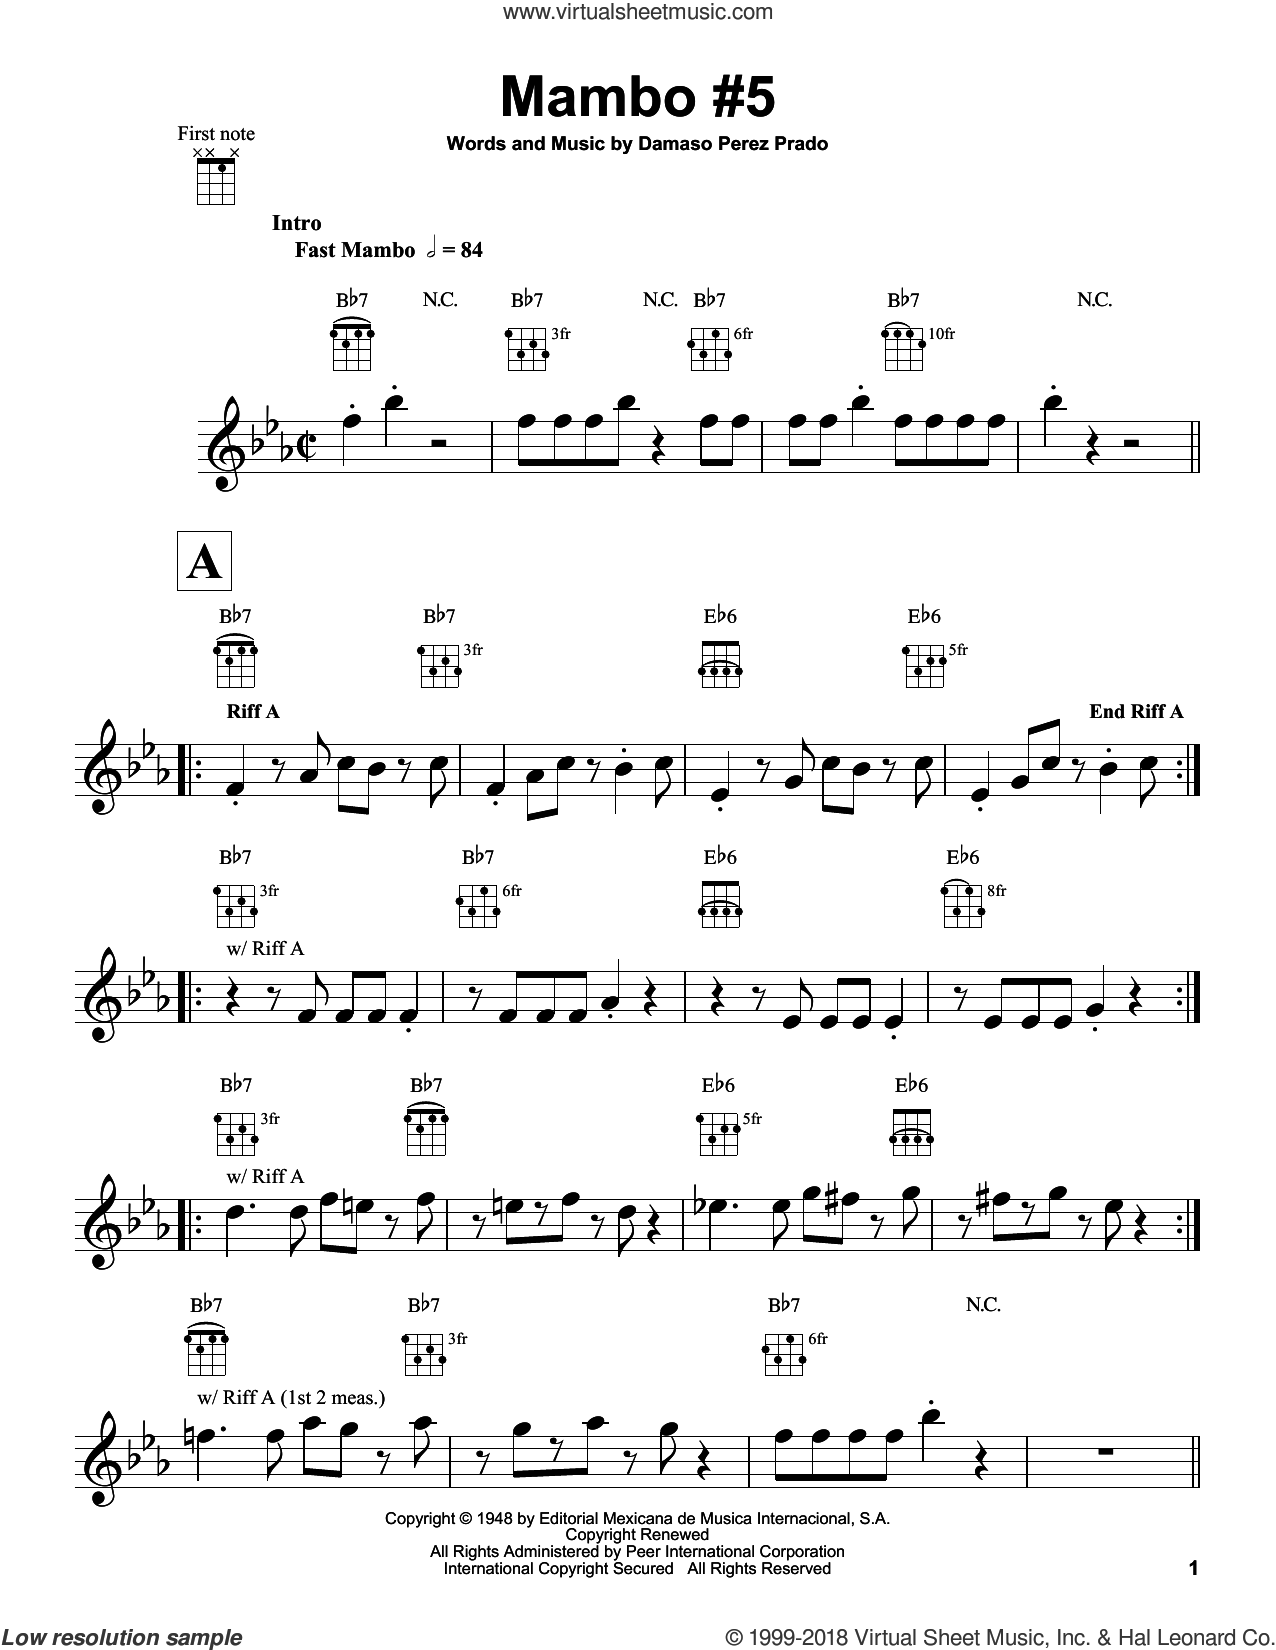 Mambo #5 sheet music for ukulele by Damaso Perez Prado and Perez Prado, intermediate skill level